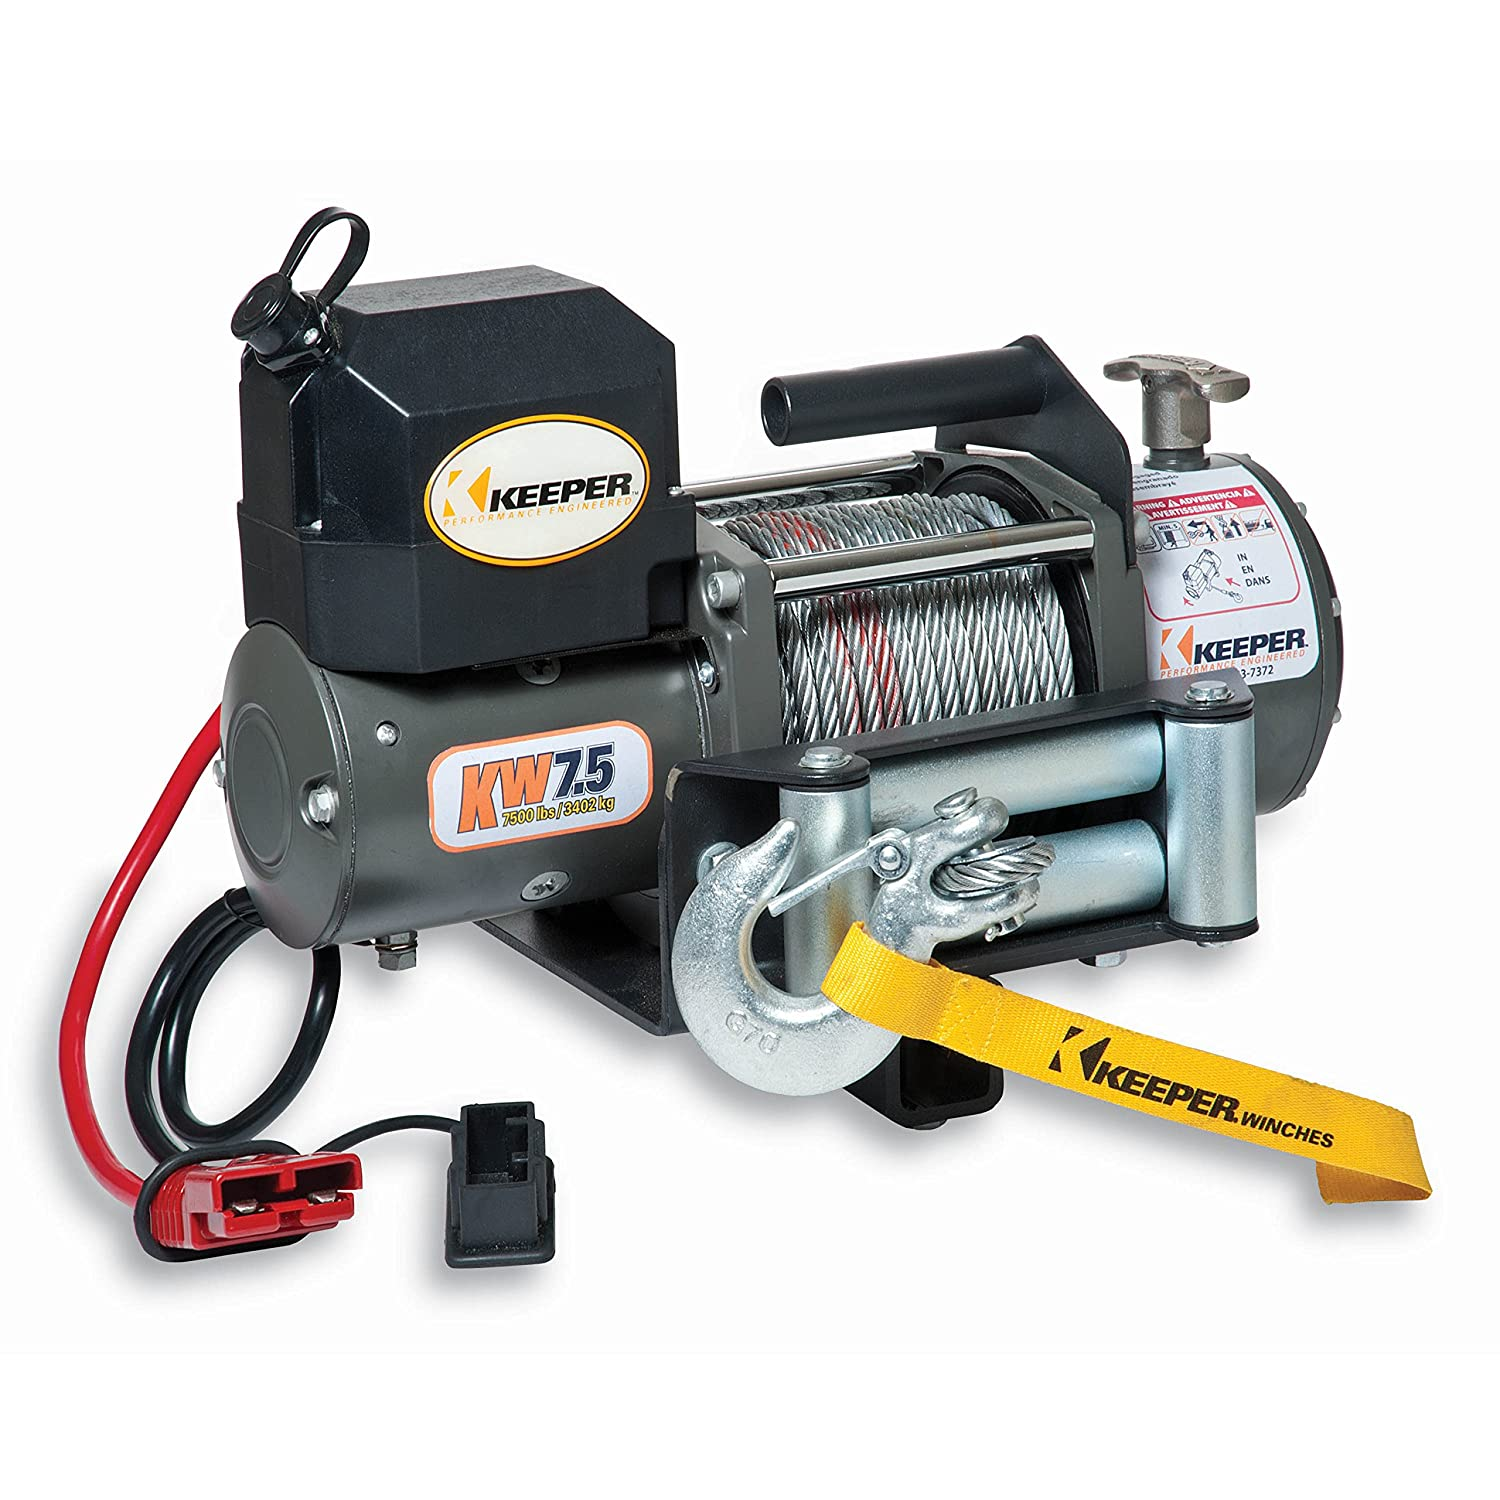 Keeper KWSL2000RM 12V DC Rapid Mount Portable Winch with Handheld Remote Load Capacity 6000 lbs